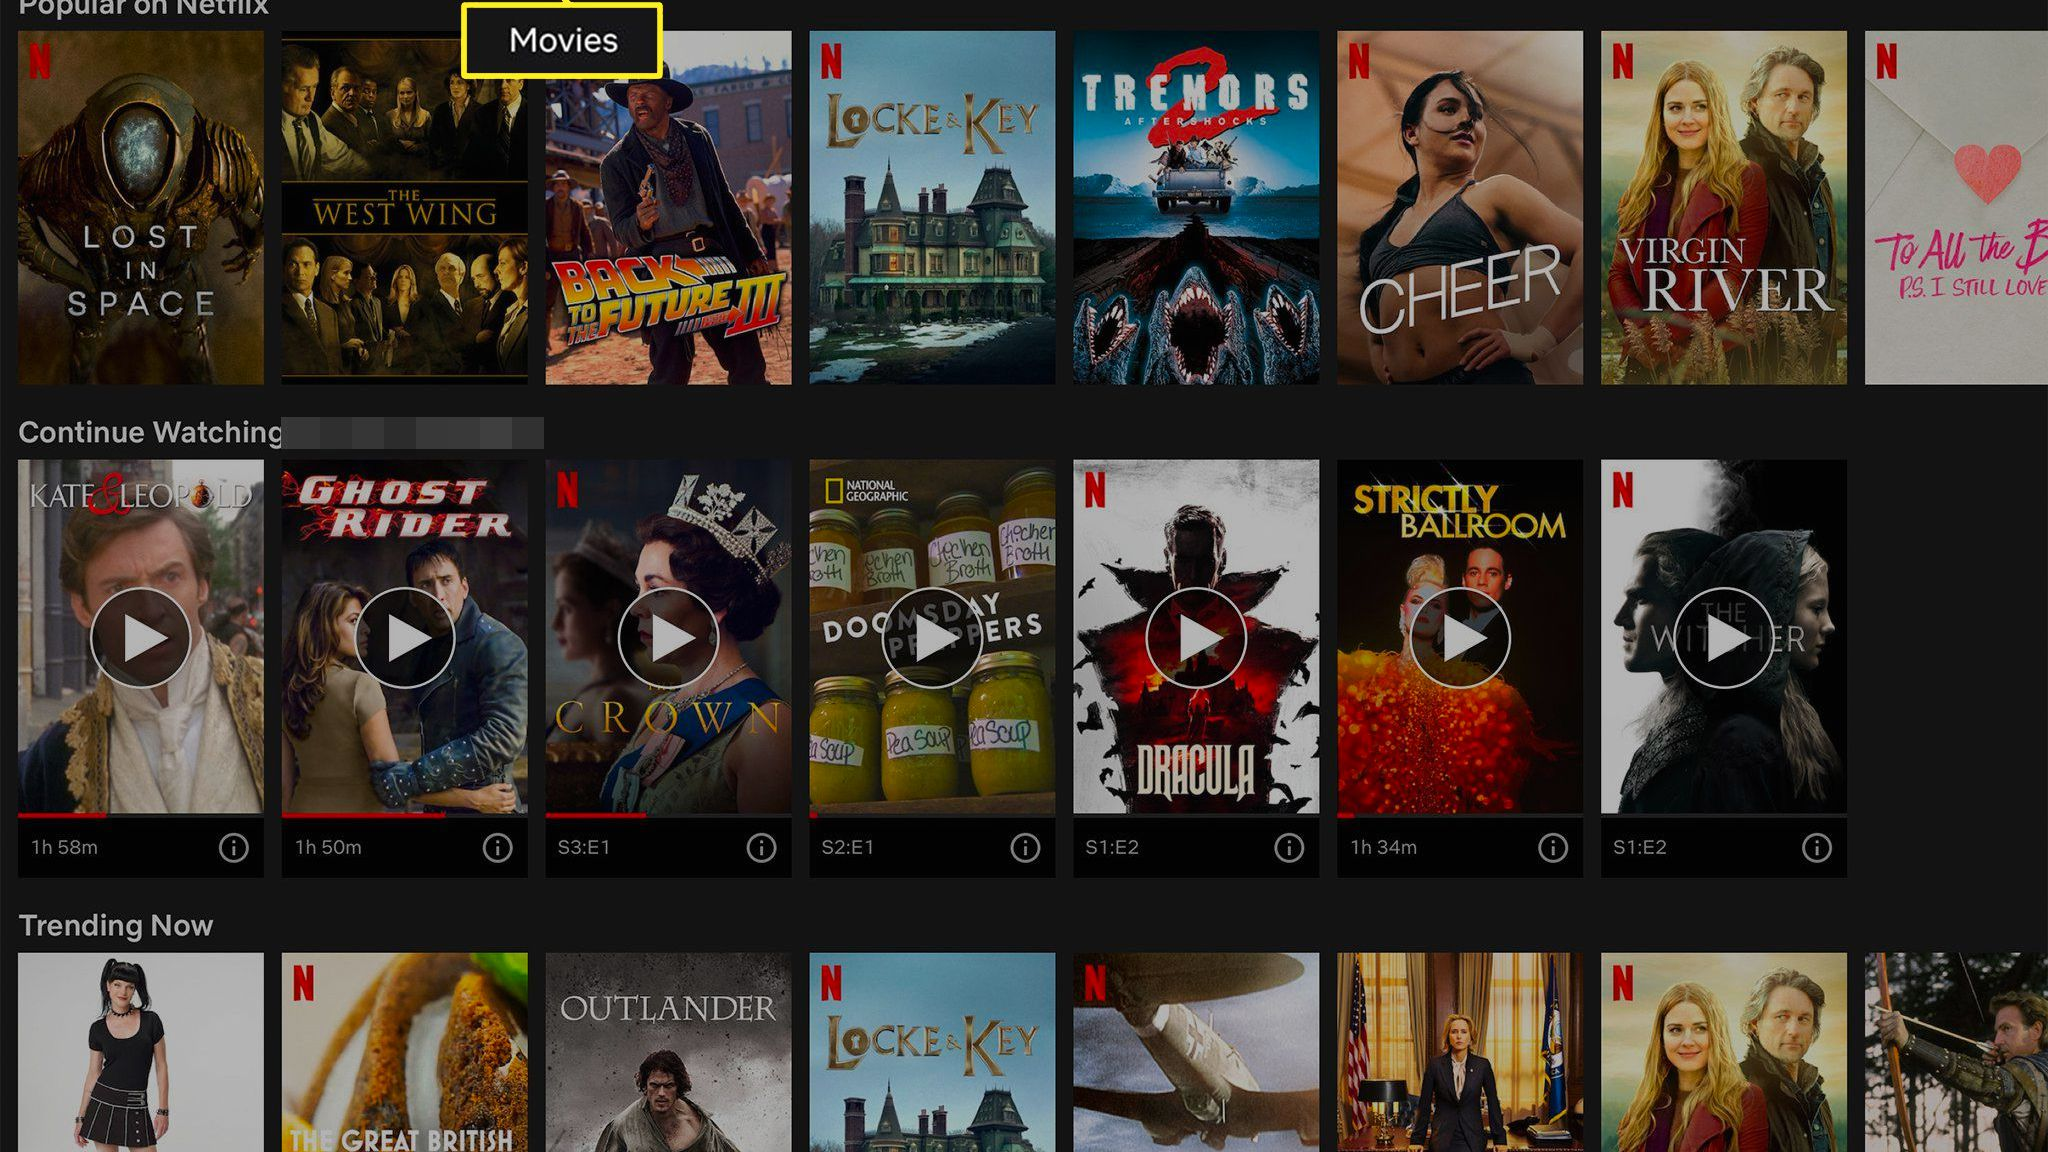 How To Download Movies From Netflix Onto Your Mac Or Ipad